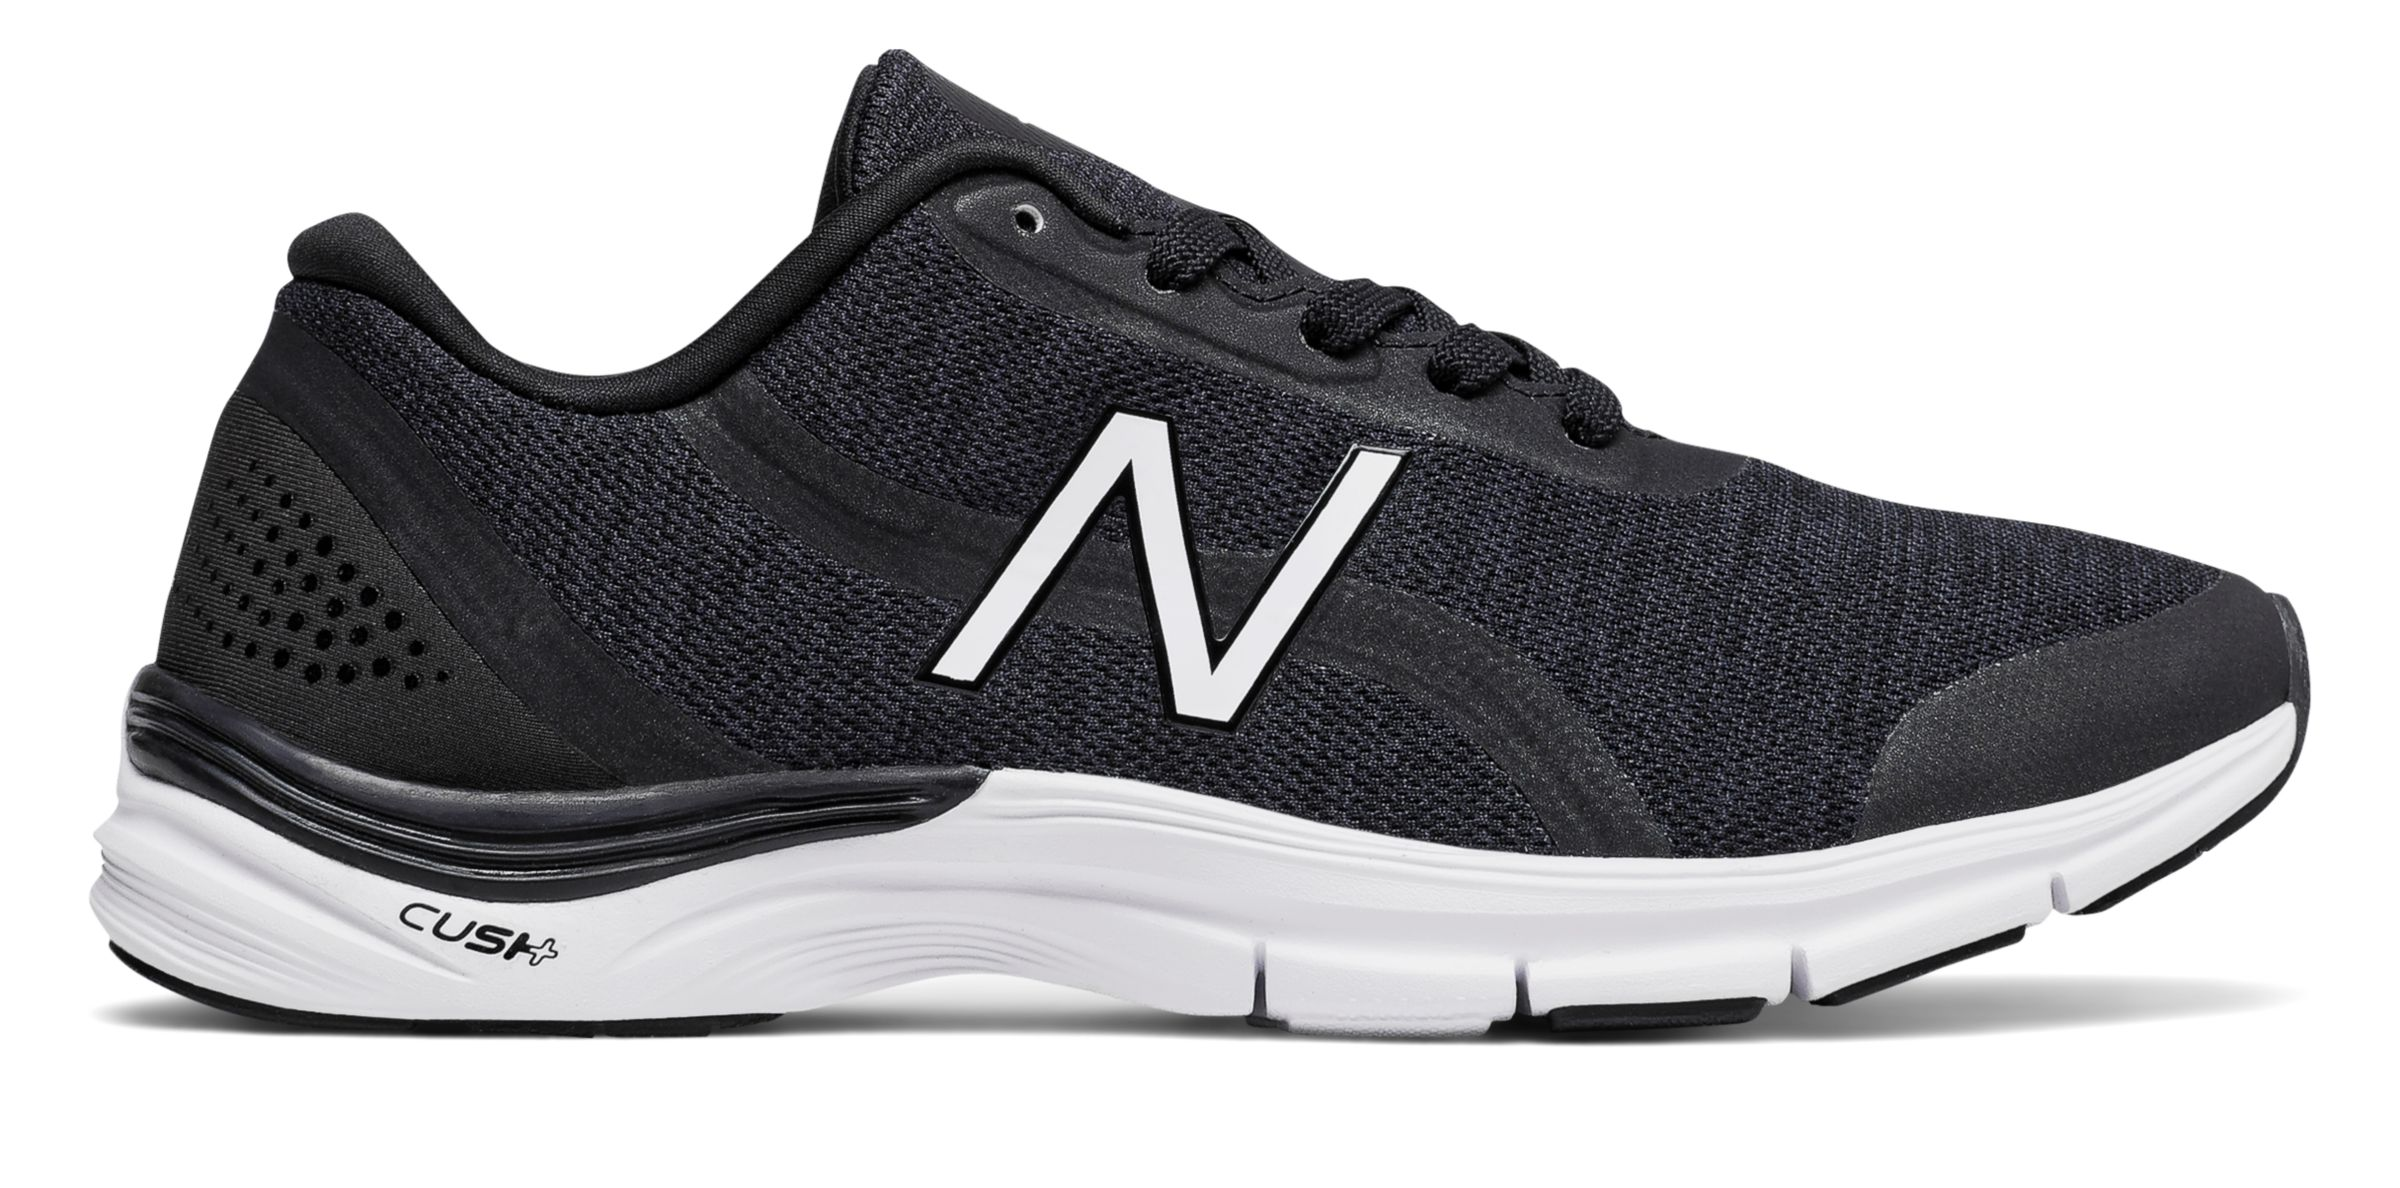 NB New Balance 711v3 Heathered Trainer, Black with White